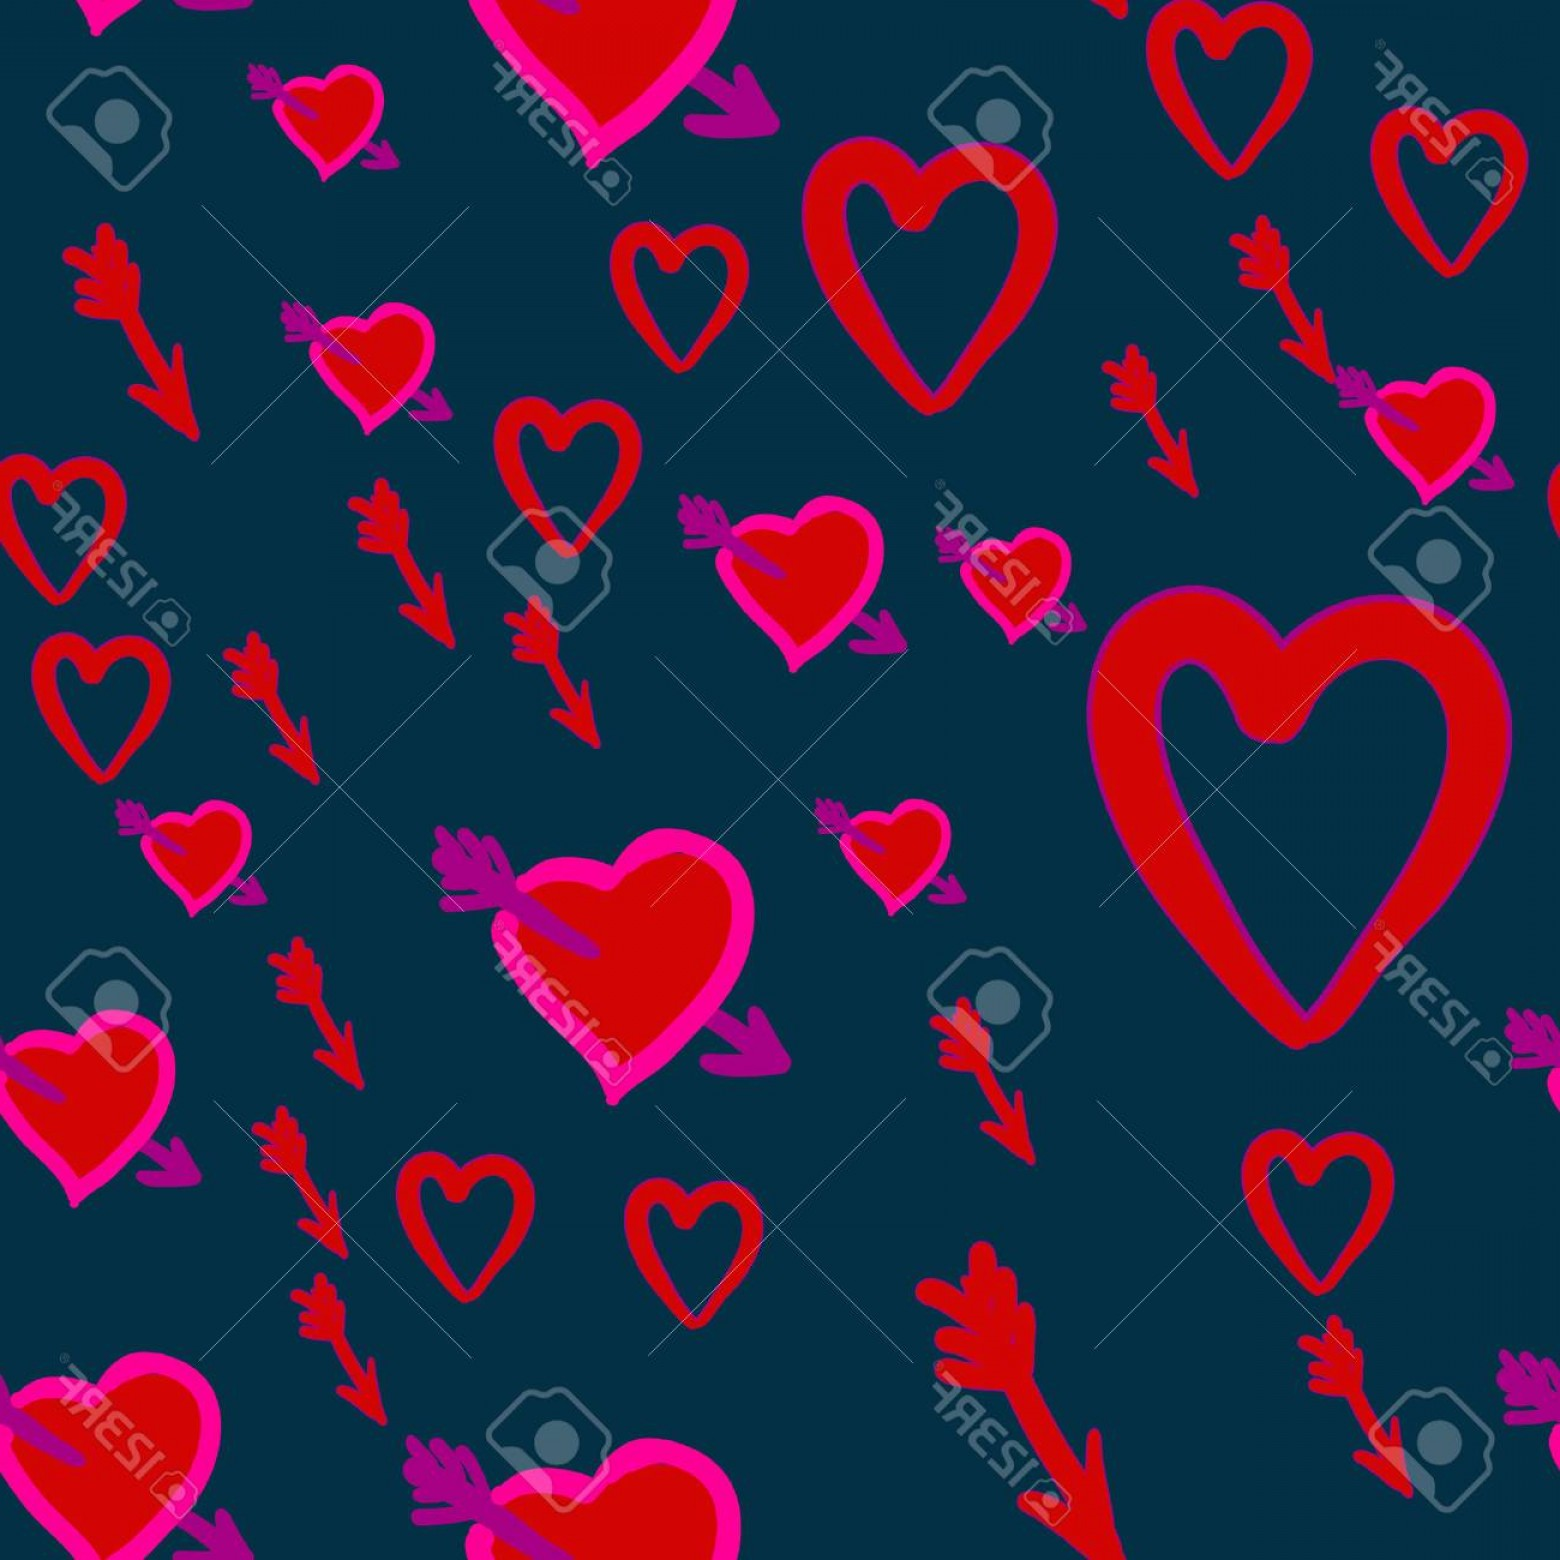 Hunting Heart Vector: Photostock Vector Cupid Hunt Valentine S Day Pattern With Cupid S Arrows In Hearts Vector Illustration Concept Stupid